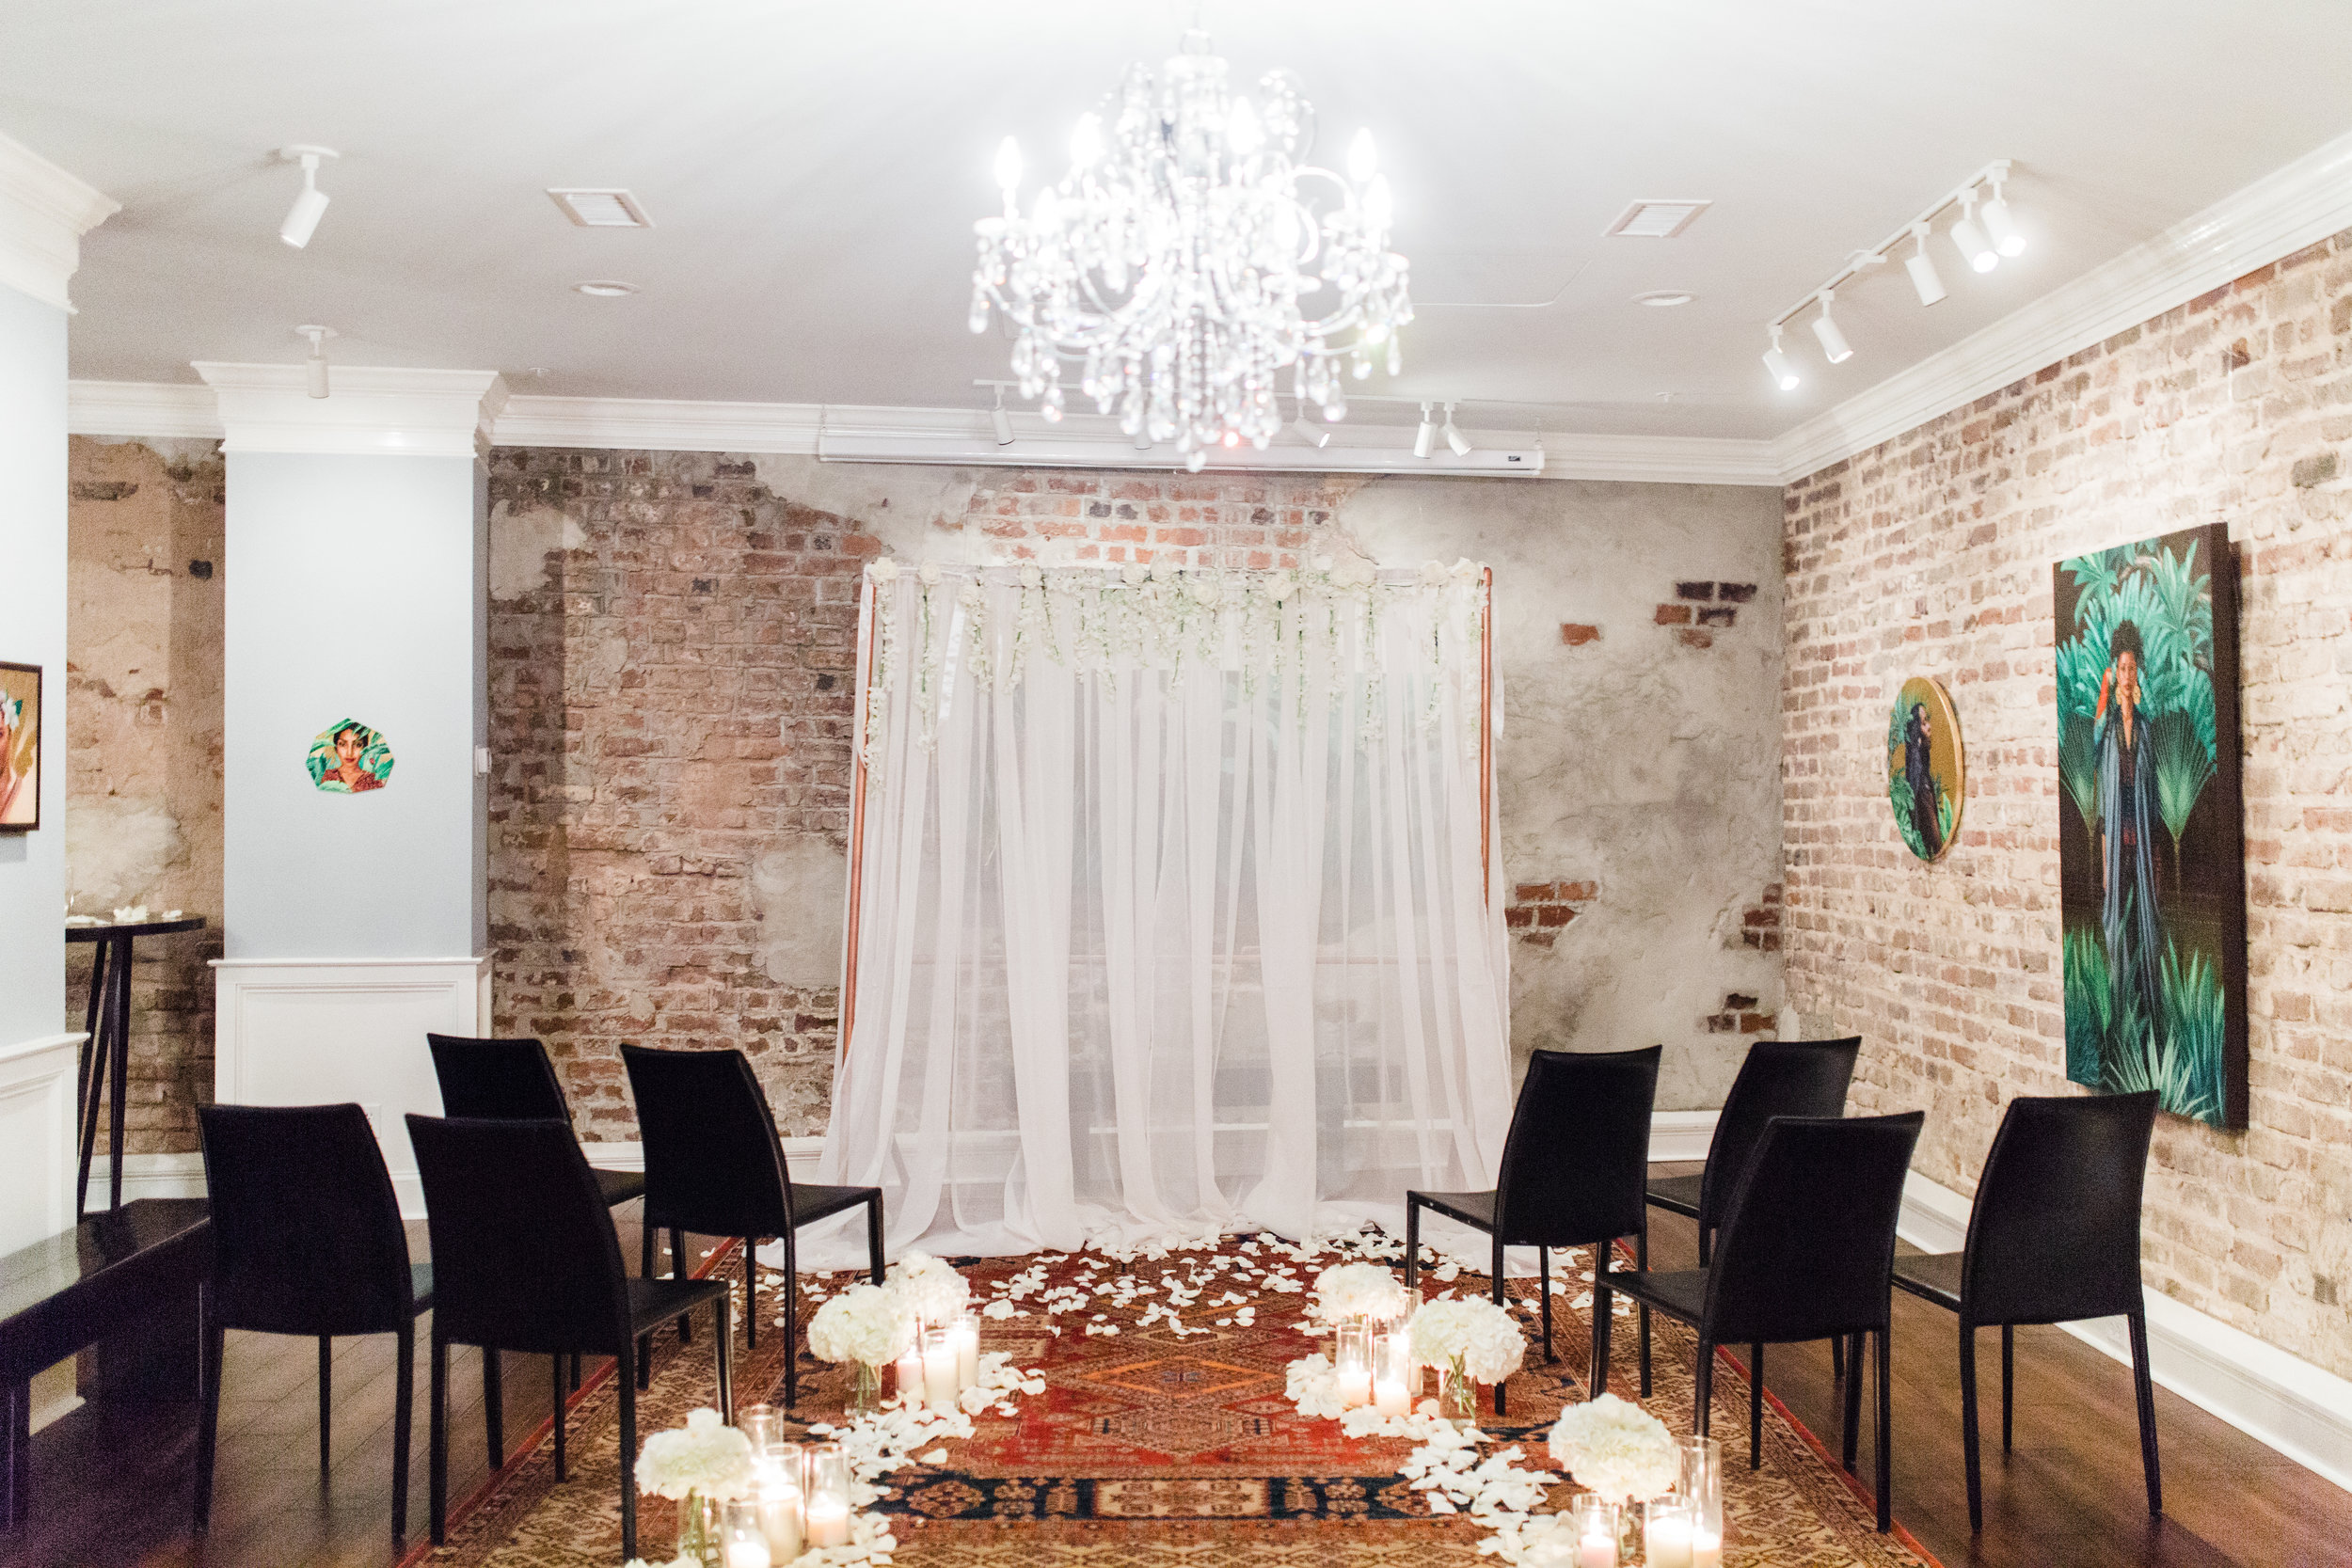 Downtown Charleston Elopement Pop-Up Wedding Planners, The Vendue, Scarlet Plan & Design (34).jpg